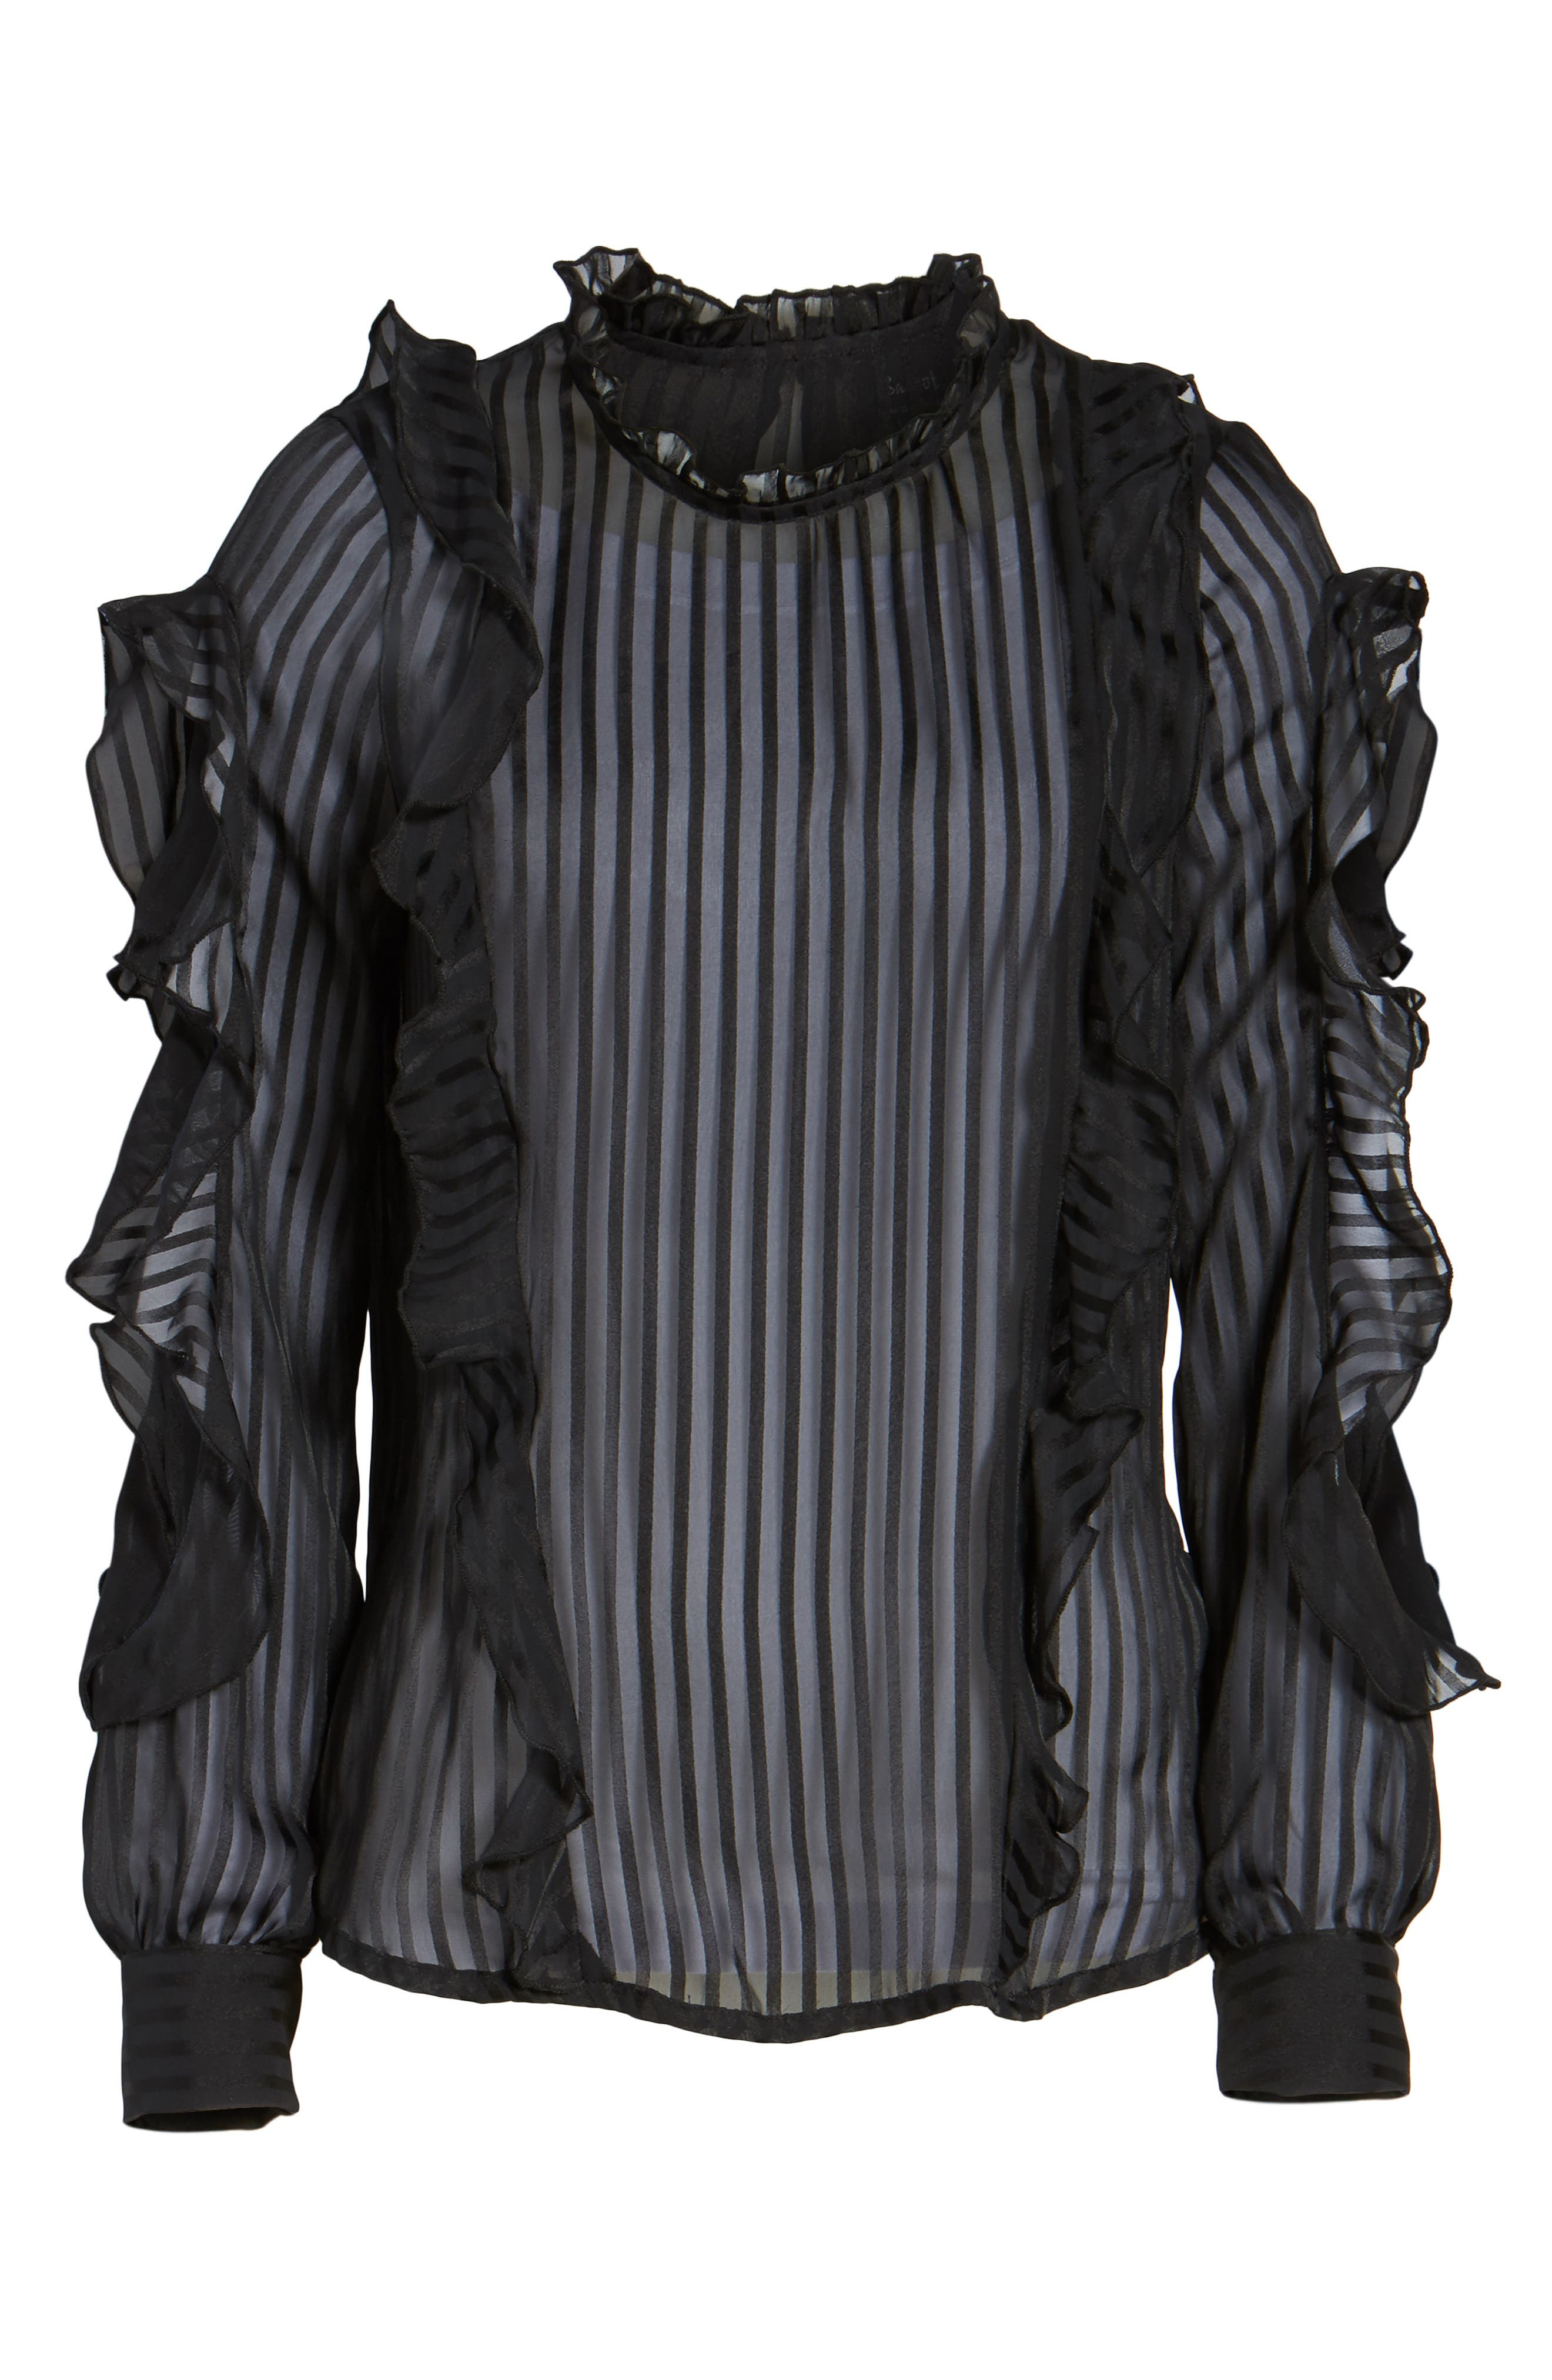 Midnight Sheer Blouse,                             Alternate thumbnail 7, color,                             Black